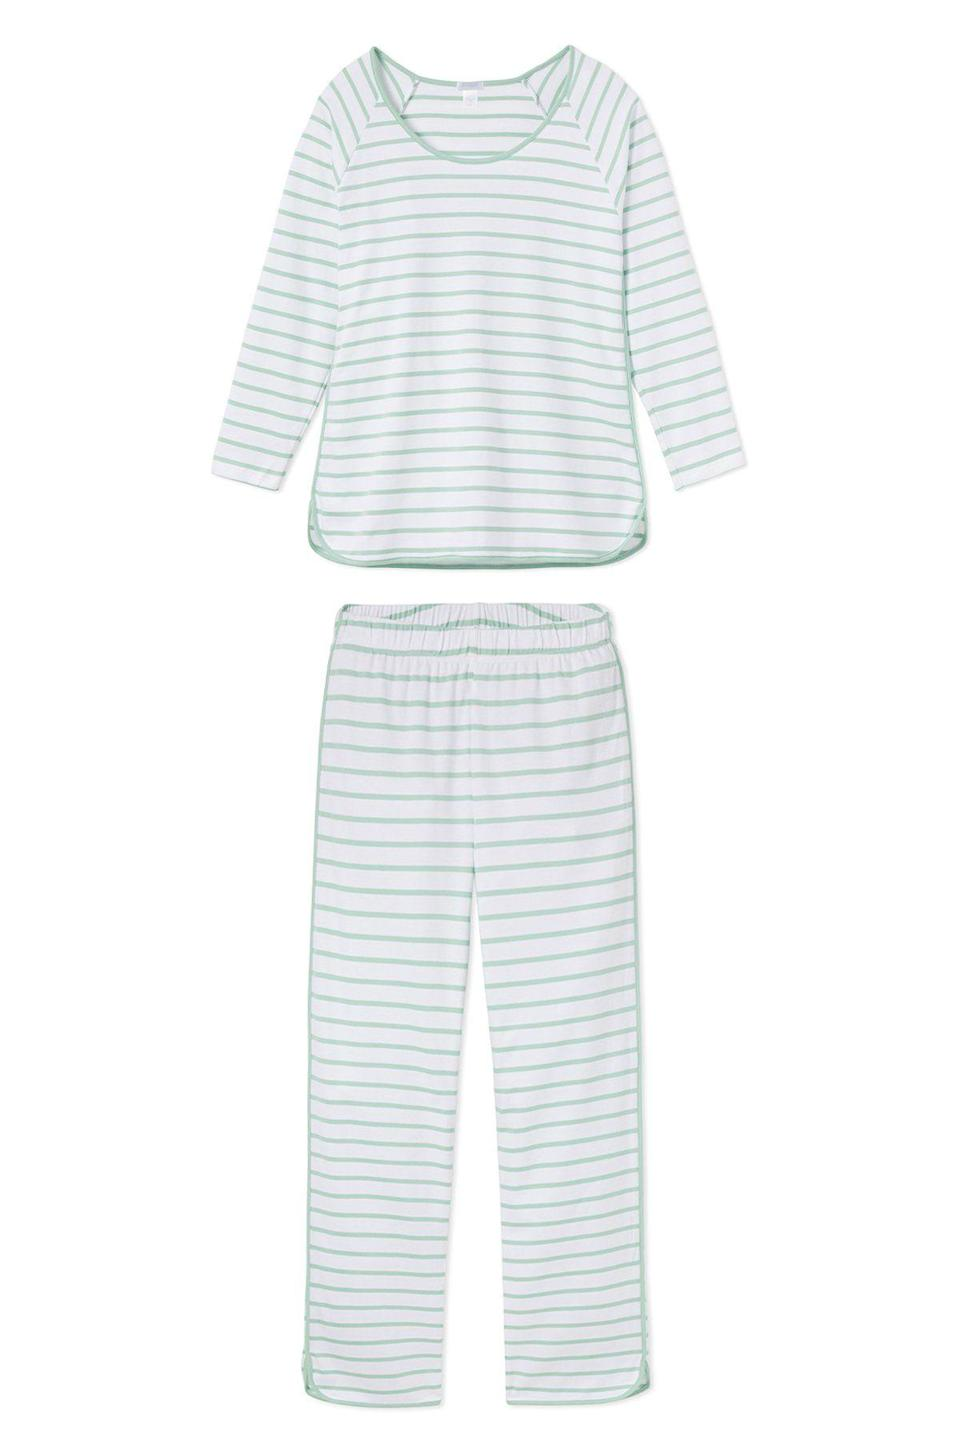 """<p>lakepajamas.com</p><p><strong>$114.00</strong></p><p><a href=""""https://go.redirectingat.com?id=74968X1596630&url=https%3A%2F%2Flakepajamas.com%2Fproducts%2Fspring-green-long-tall-set&sref=https%3A%2F%2Fwww.townandcountrymag.com%2Fstyle%2Fg27168800%2Flast-minute-mothers-day-gifts%2F"""" rel=""""nofollow noopener"""" target=""""_blank"""" data-ylk=""""slk:Shop Now"""" class=""""link rapid-noclick-resp"""">Shop Now</a></p><p>We'll say it once, we'll say it always: comfortable and cute <a href=""""https://www.townandcountrymag.com/style/fashion-trends/g29598470/best-pajamas-for-women/"""" rel=""""nofollow noopener"""" target=""""_blank"""" data-ylk=""""slk:pajamas"""" class=""""link rapid-noclick-resp"""">pajamas</a> are a perennially fabulous gift. Lake's pima cotton jammies, which come in fresh hues and prints, are proof. </p>"""